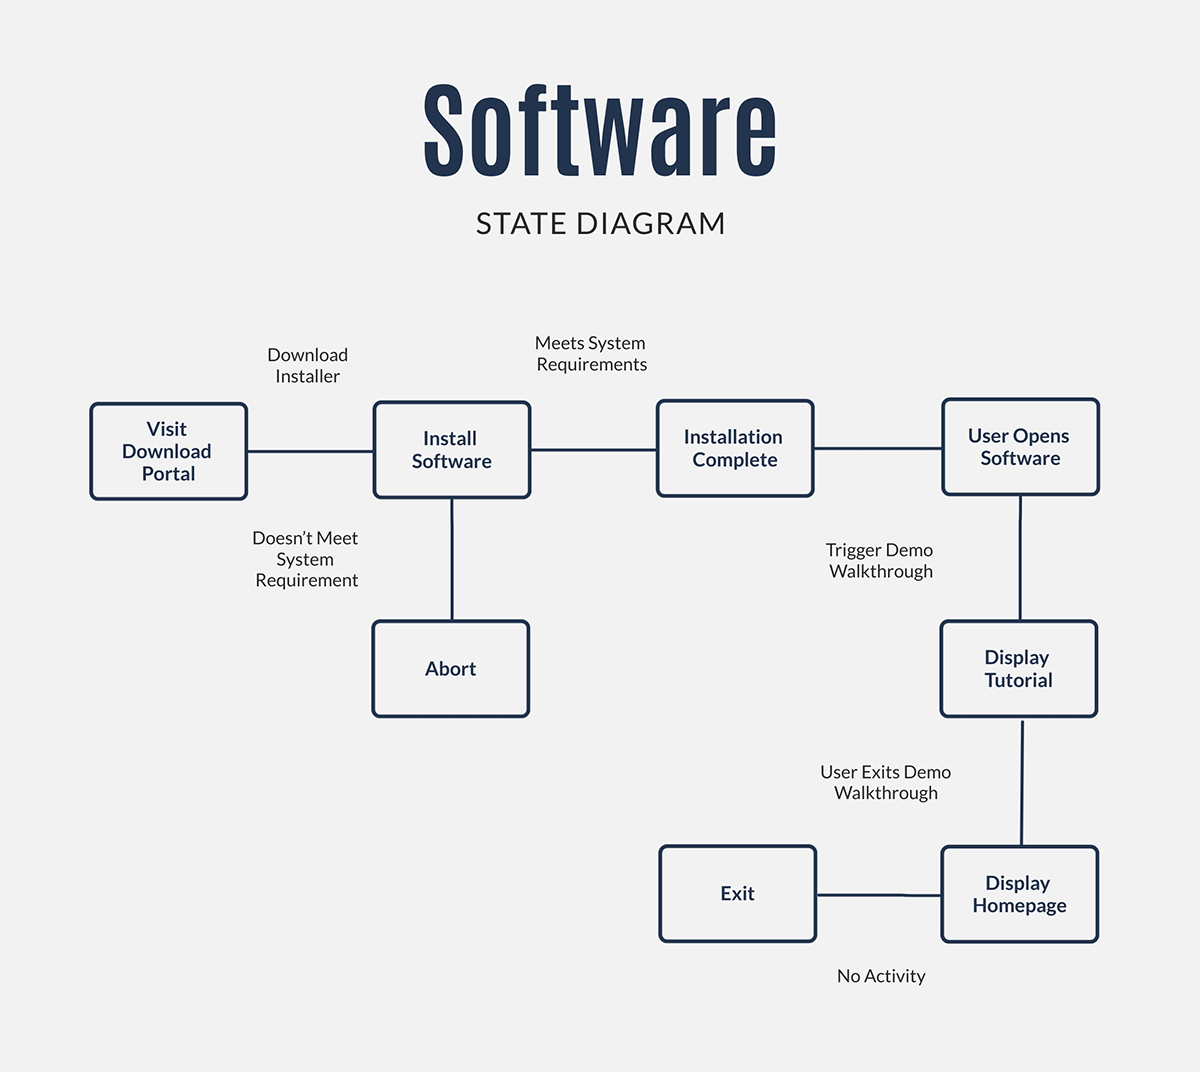 A software state diagram template available in Visme.